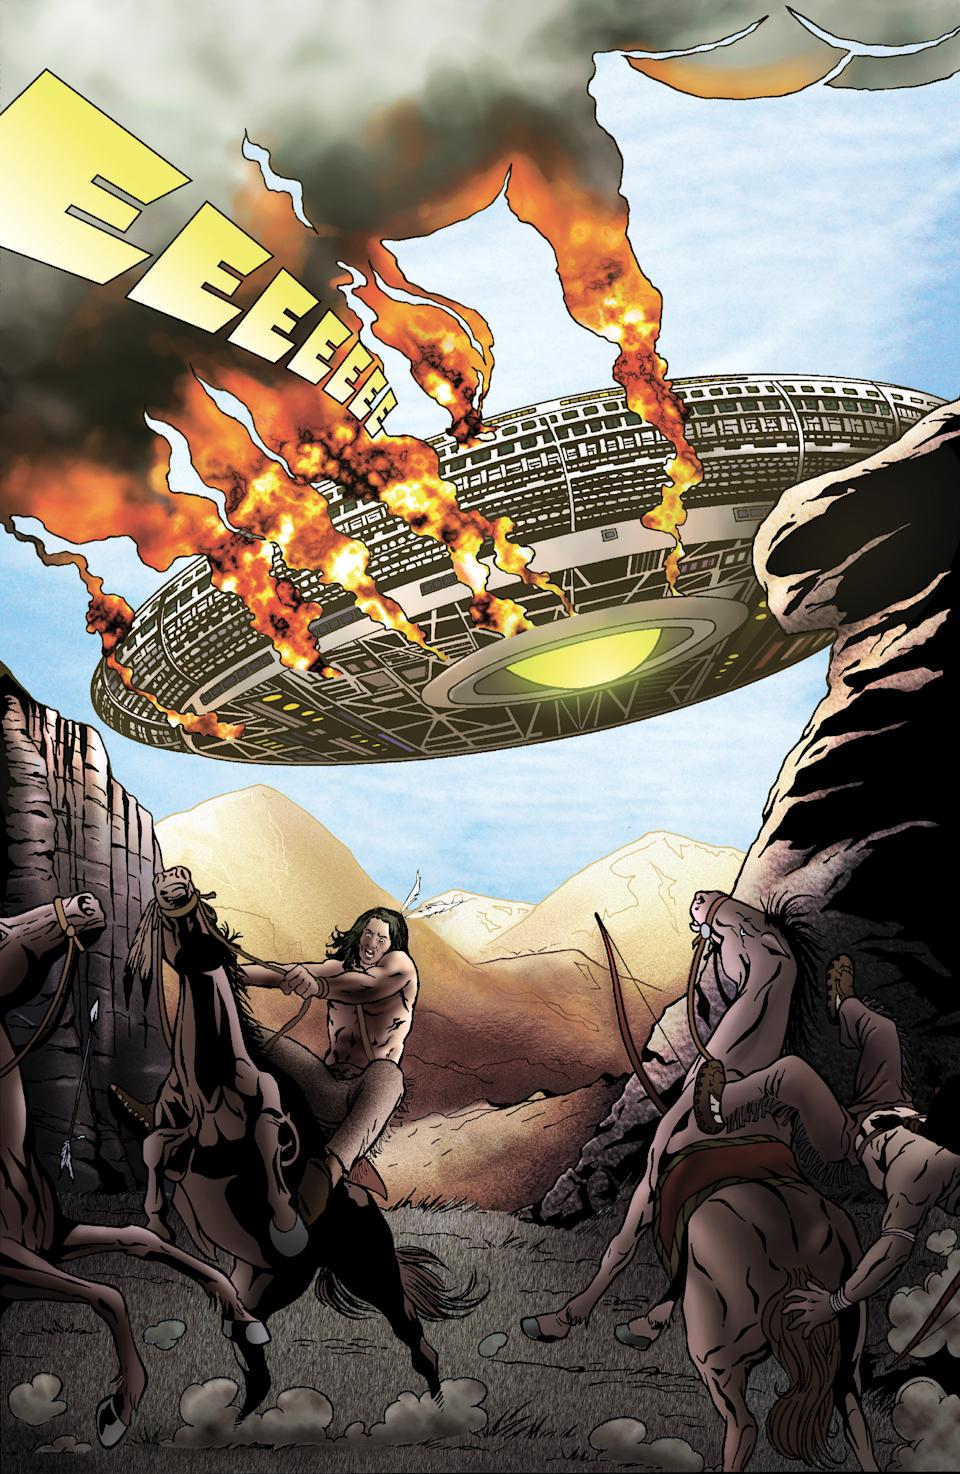 A panel from the comic book version of Cowboys & Aliens (Photo: Scott Mitchell Rosenberg)